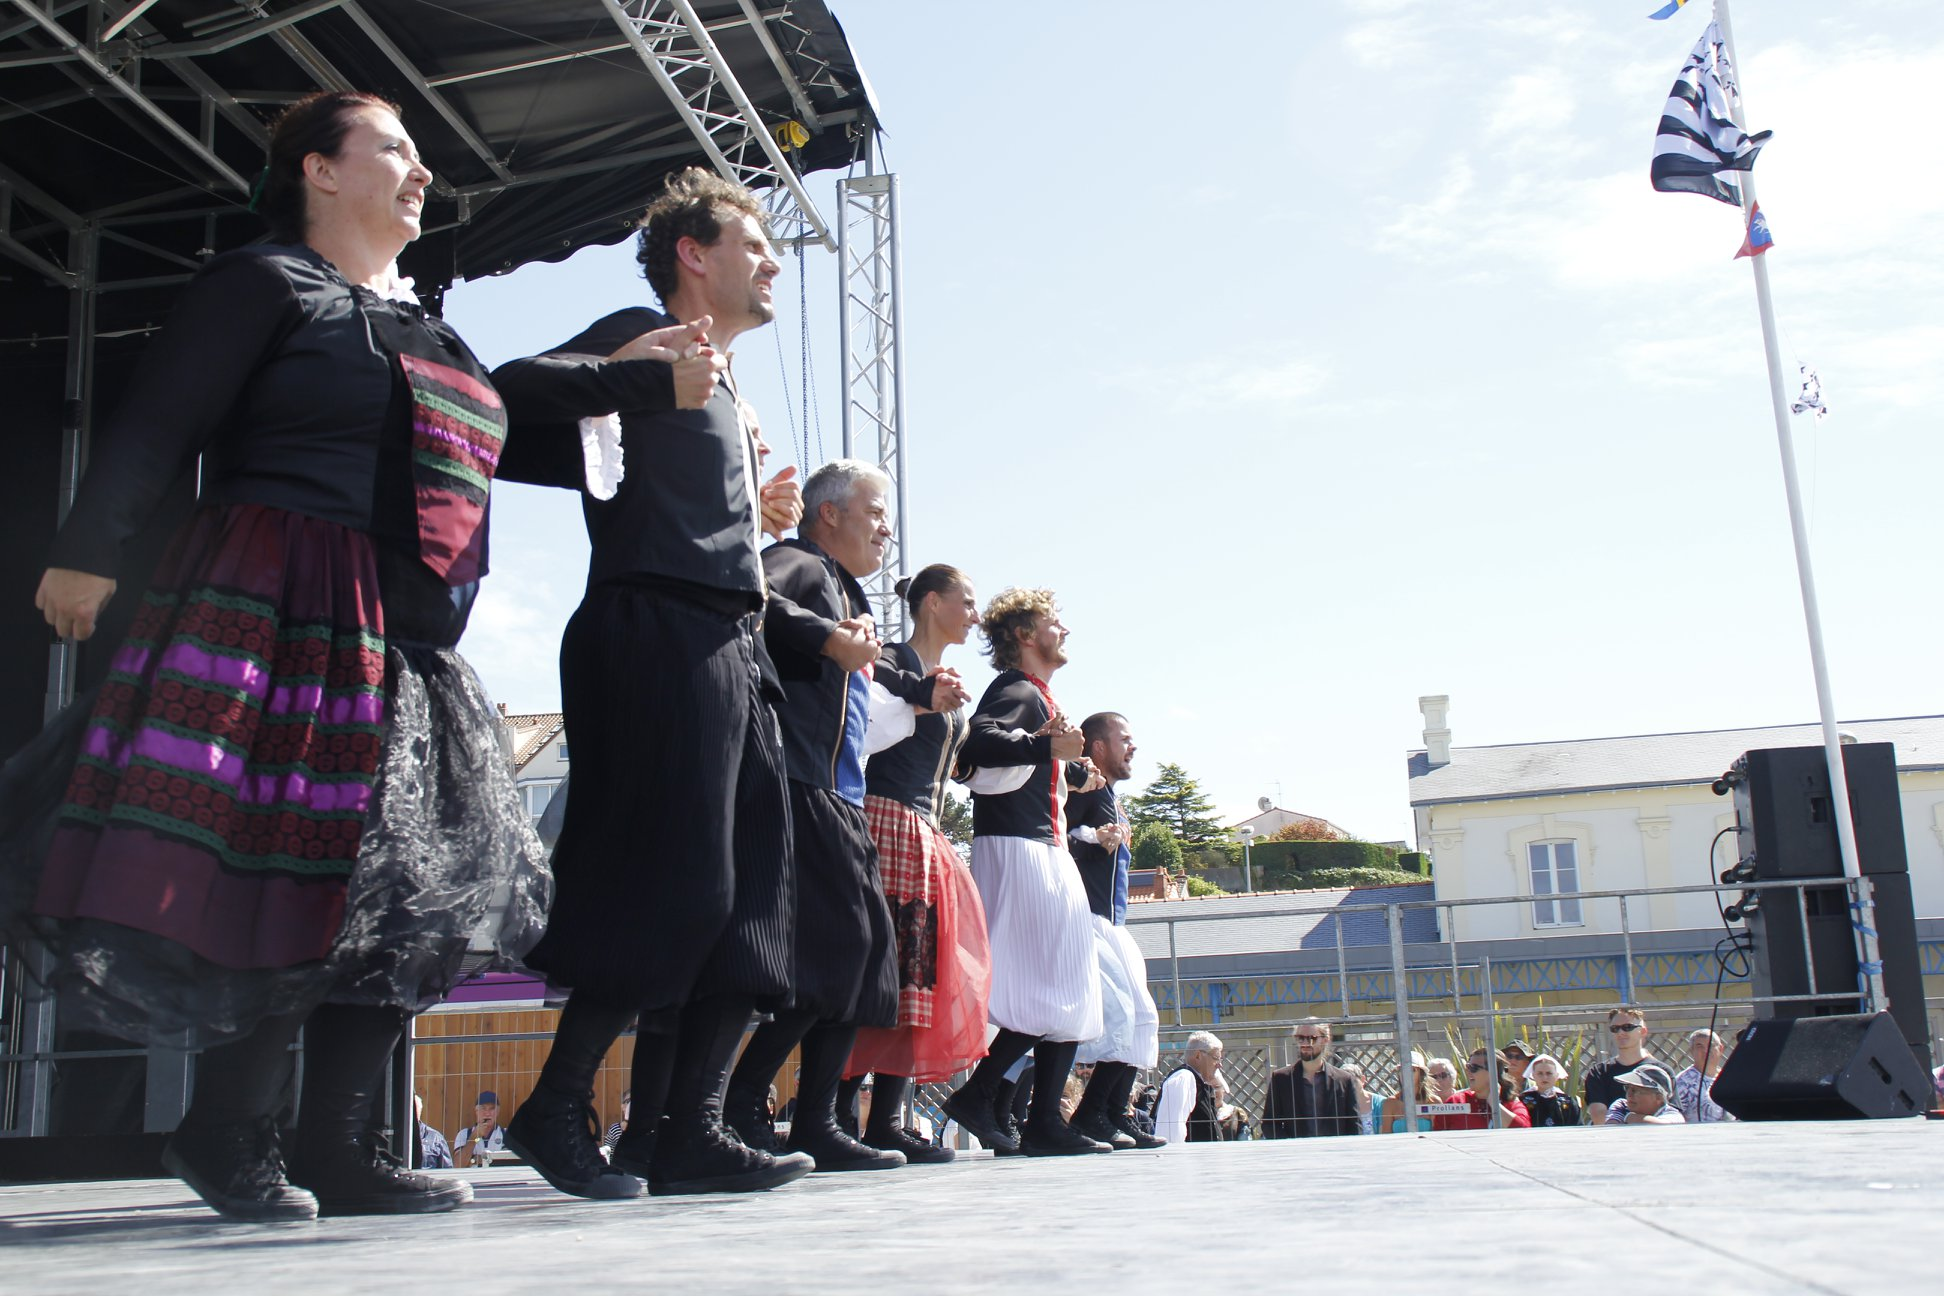 Grand Spectacle fête St. Gilles Pornic 2018